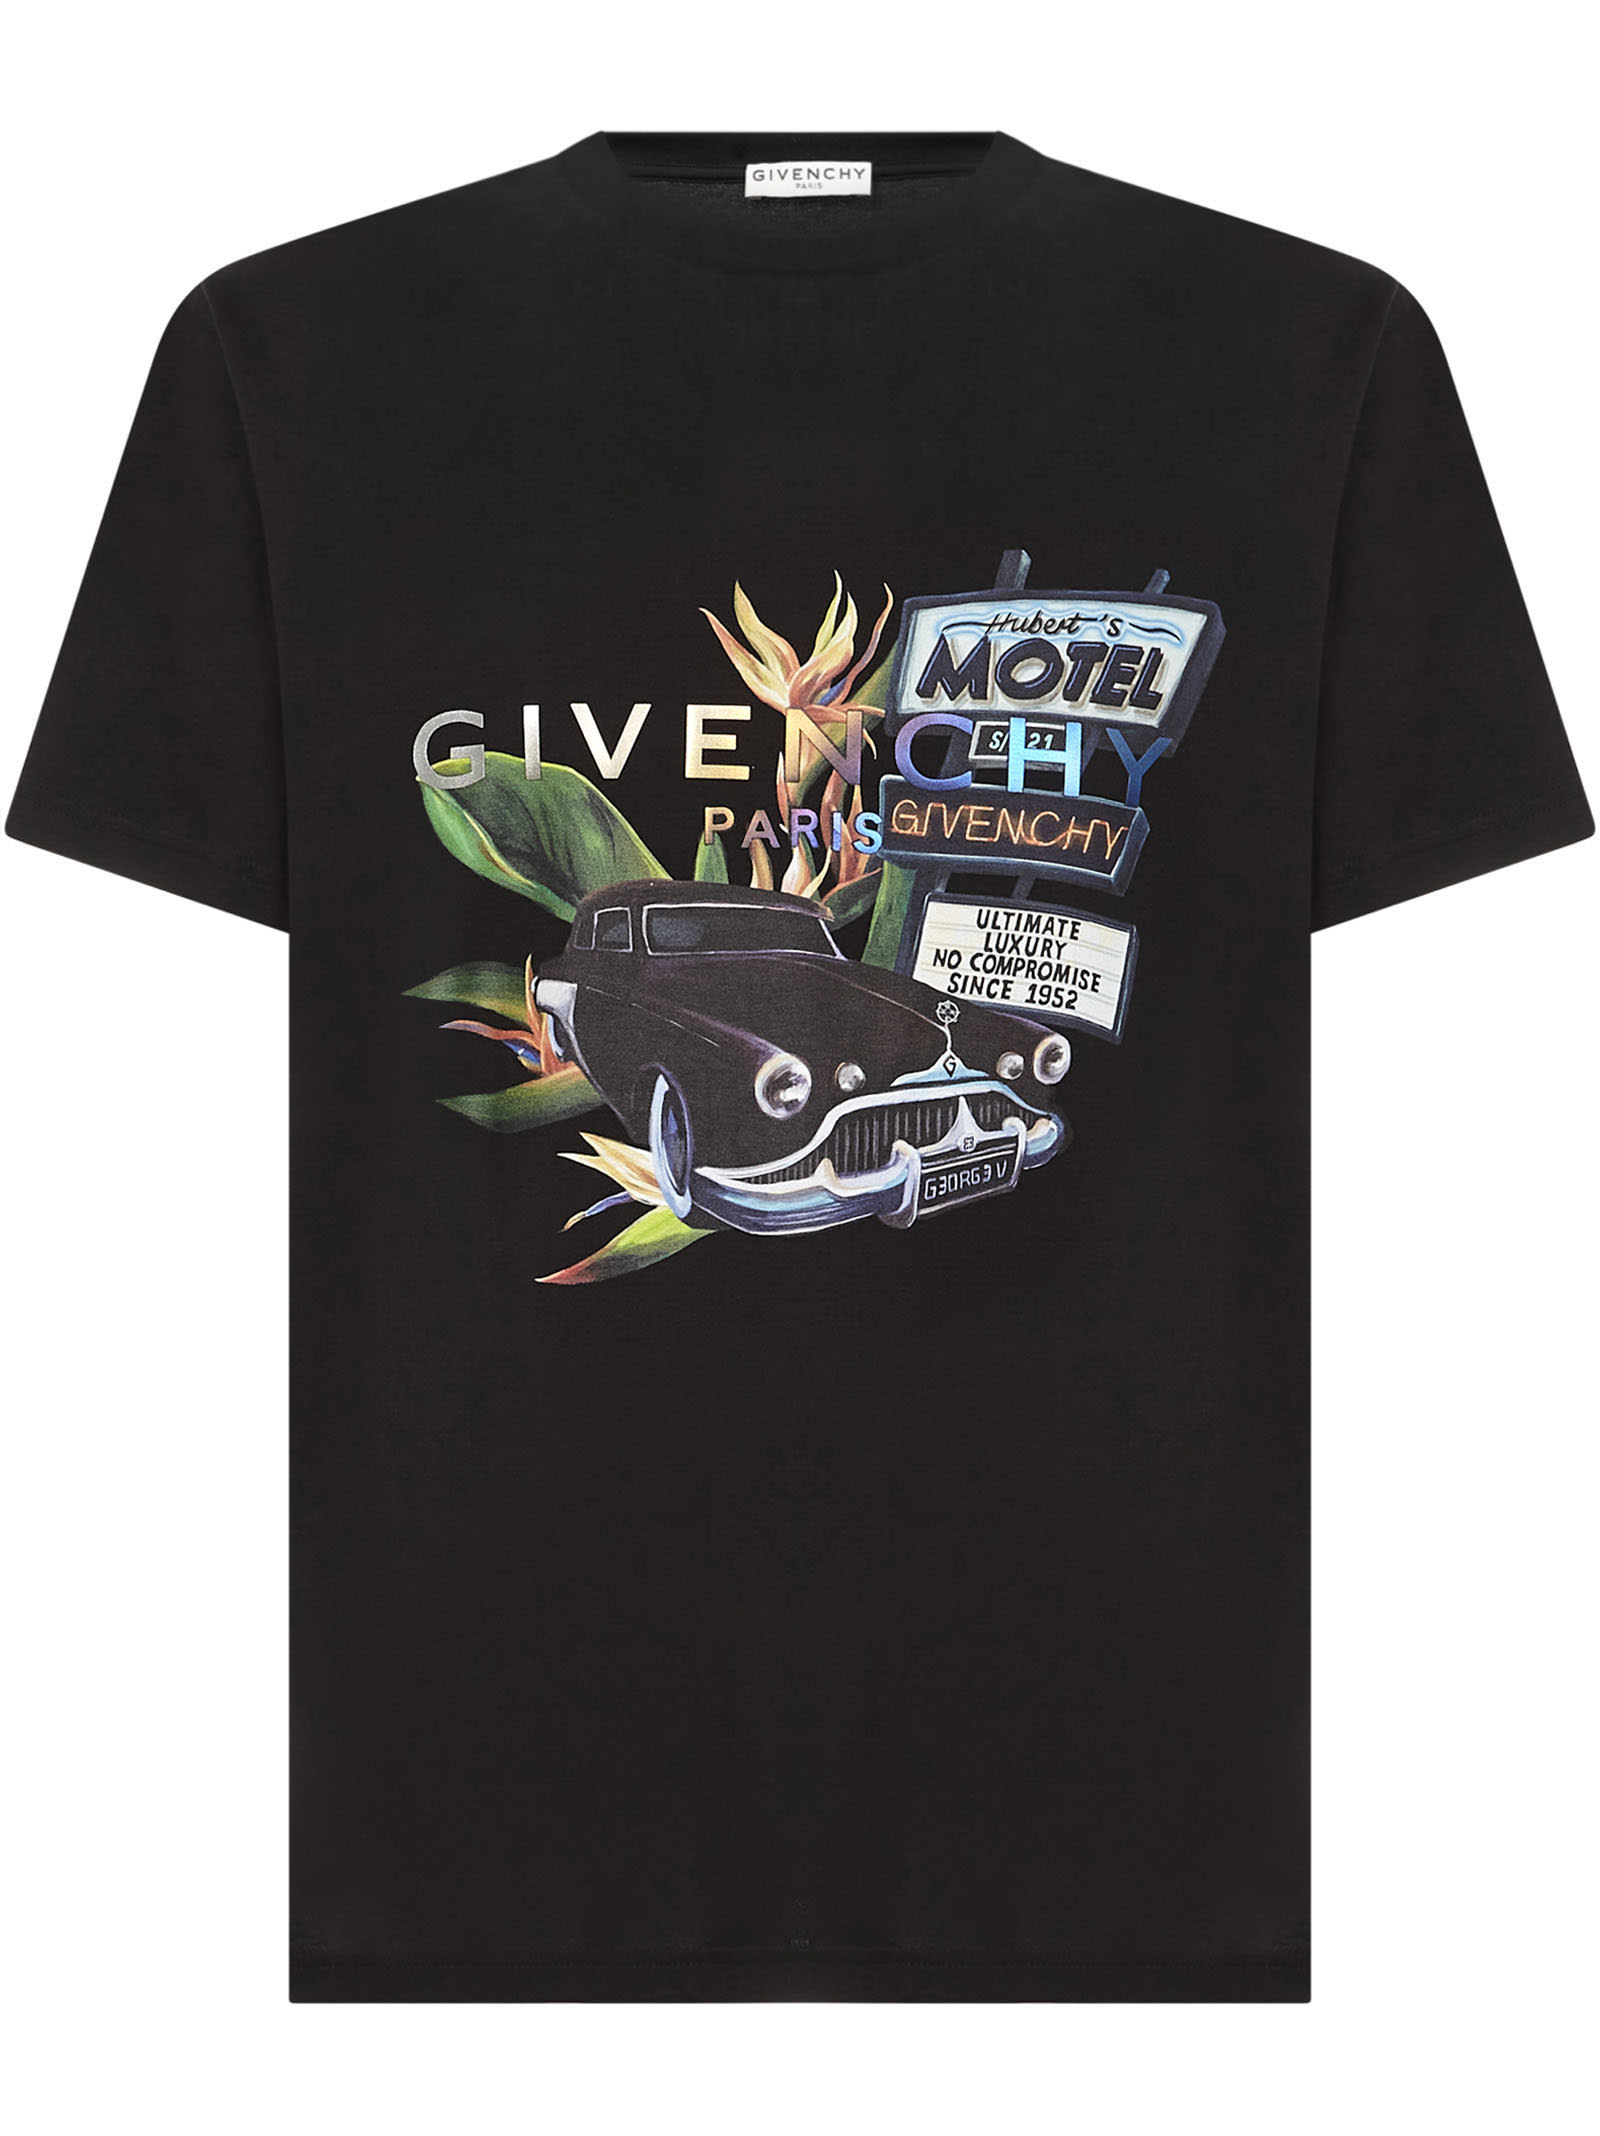 Givenchy Motel T-shirt